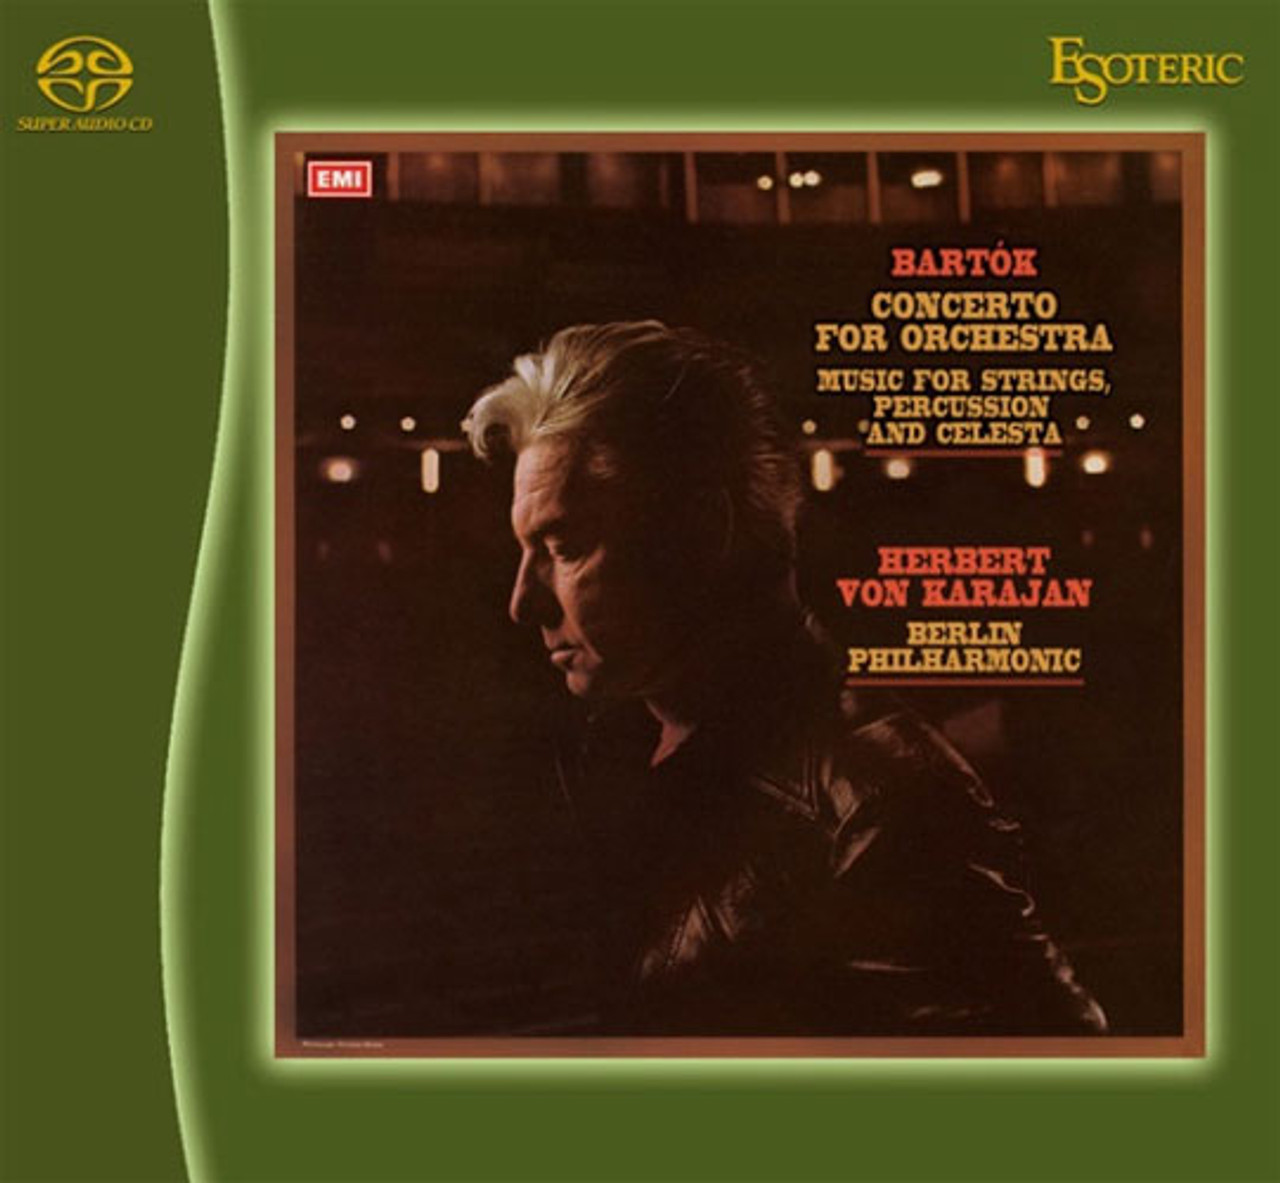 Bartok Music for Strings, Celesta Conc. for Orchestra Esoteric SACD